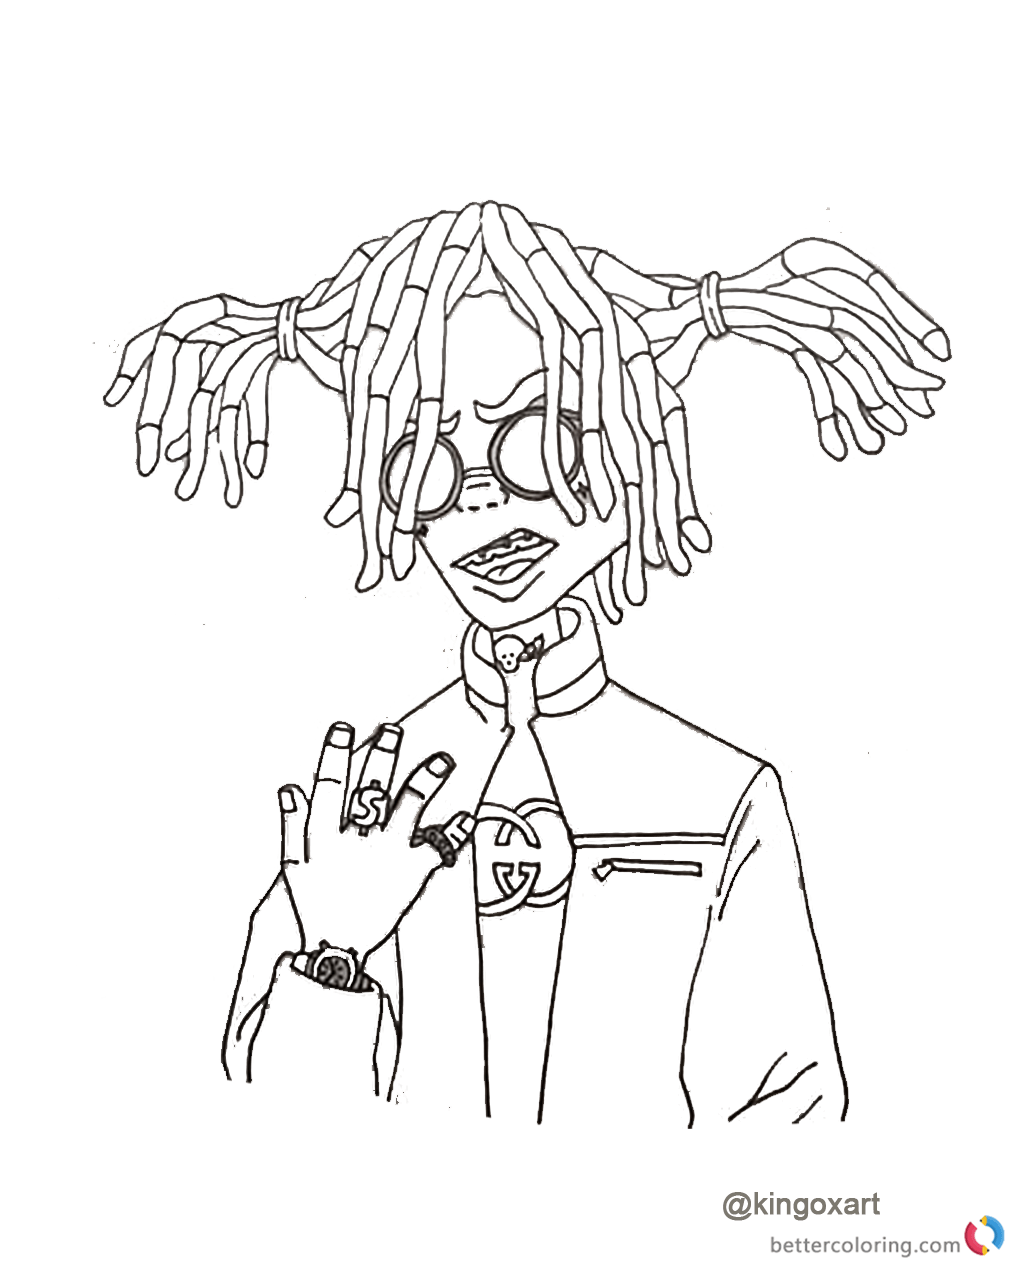 Lil Pump Coloring Sheet Free Printable Coloring Pages